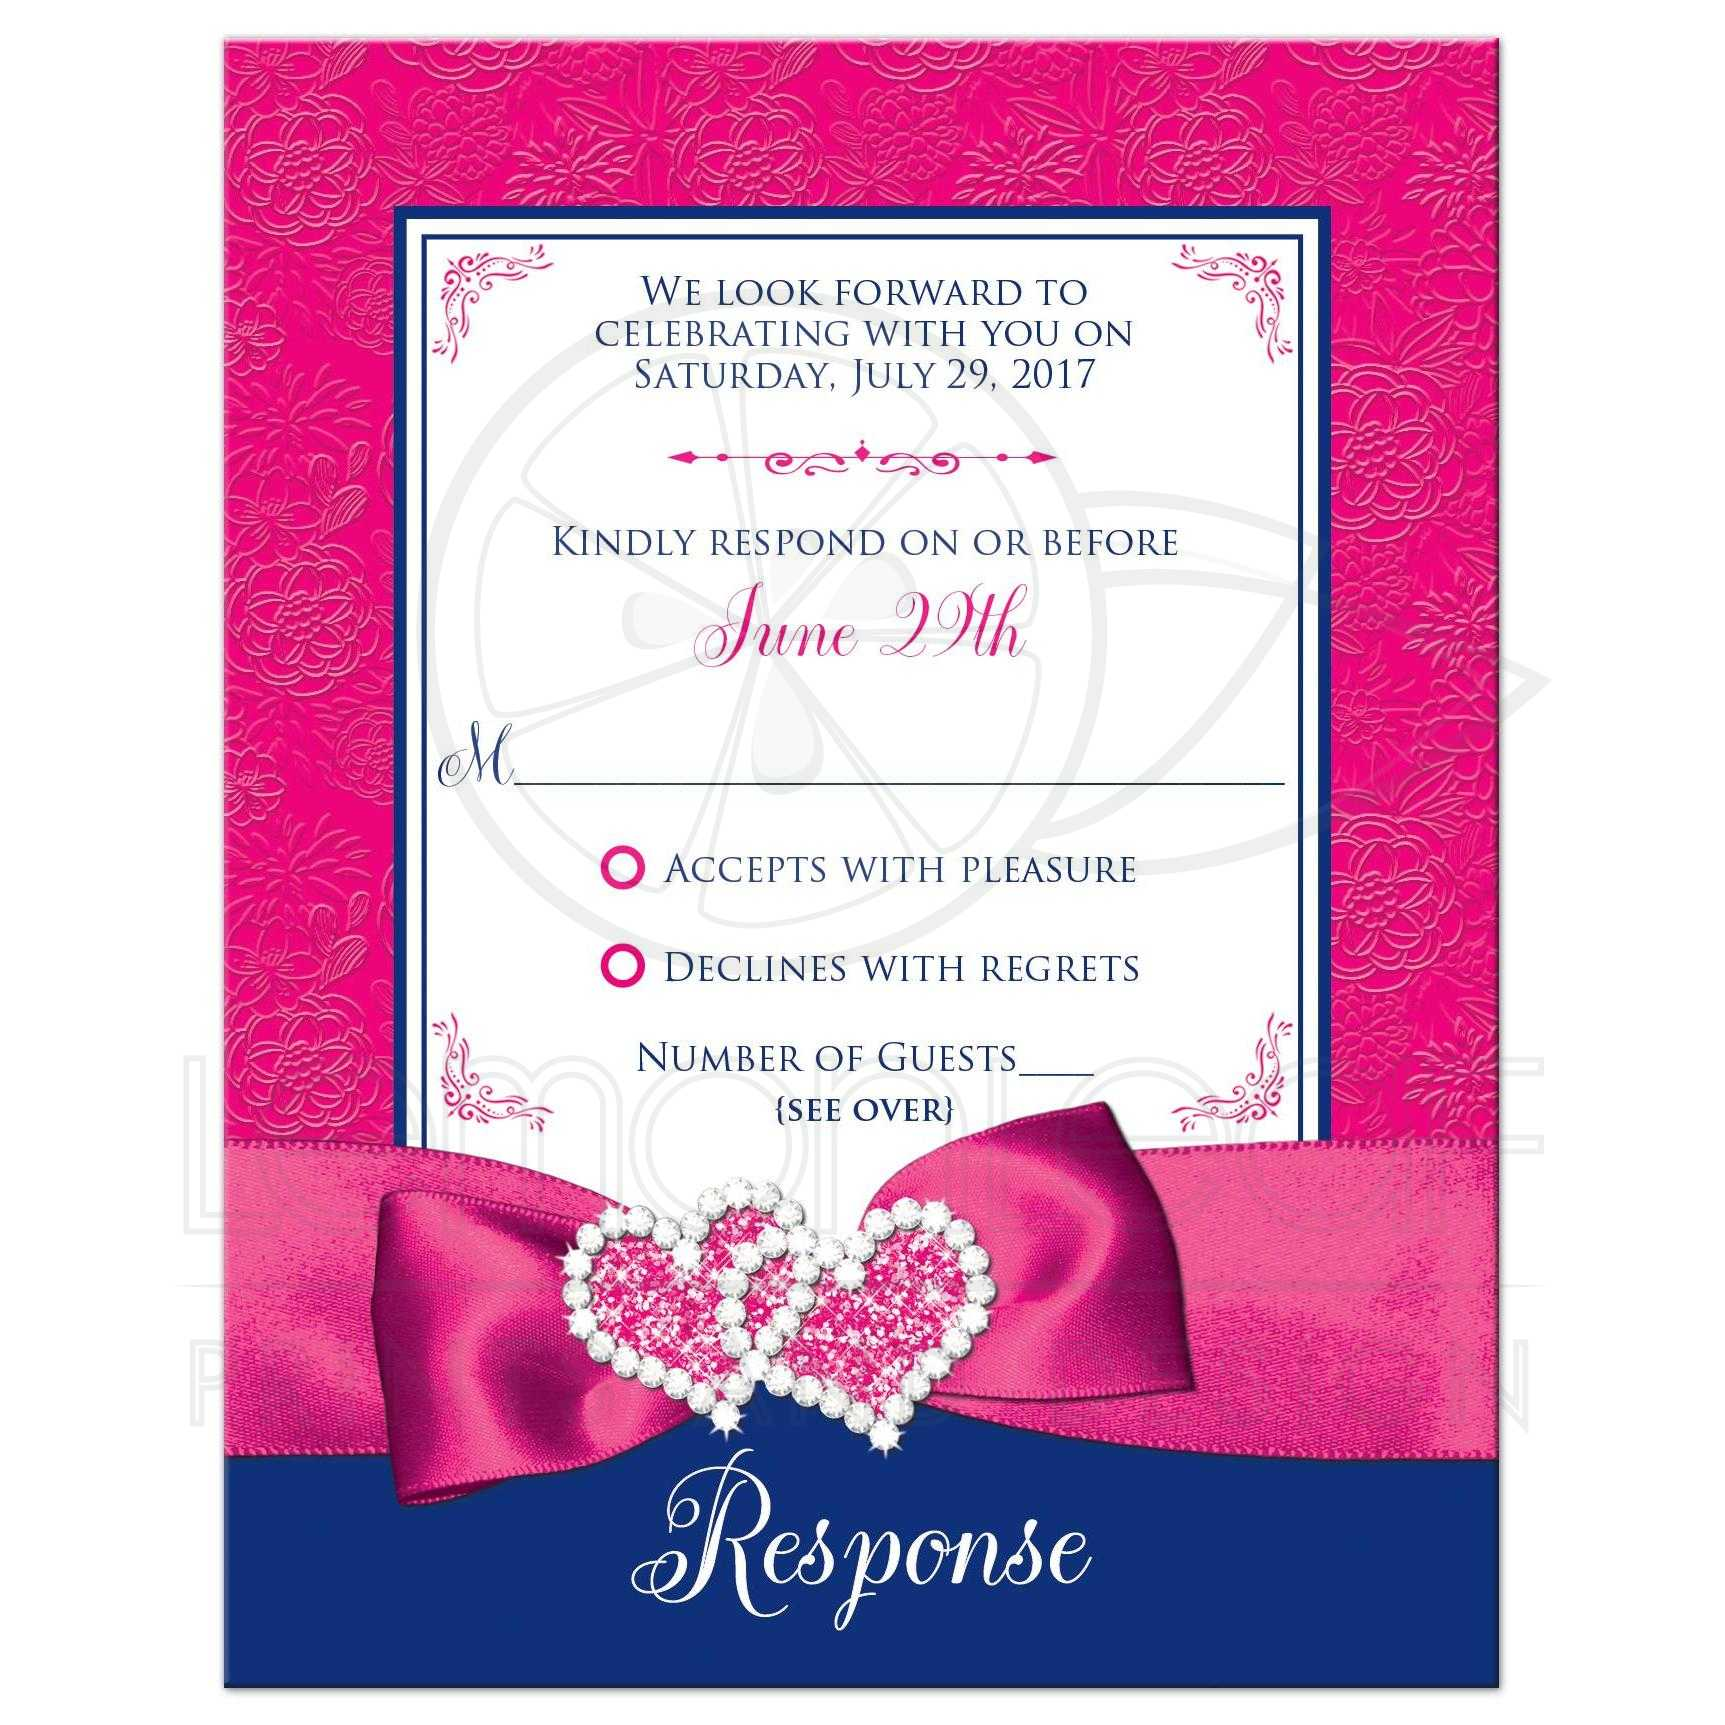 Wedding response card printed ribbon double hearts royal blue best royal blue pink and white floral pattern wedding response reply rsvp enclosure stopboris Choice Image